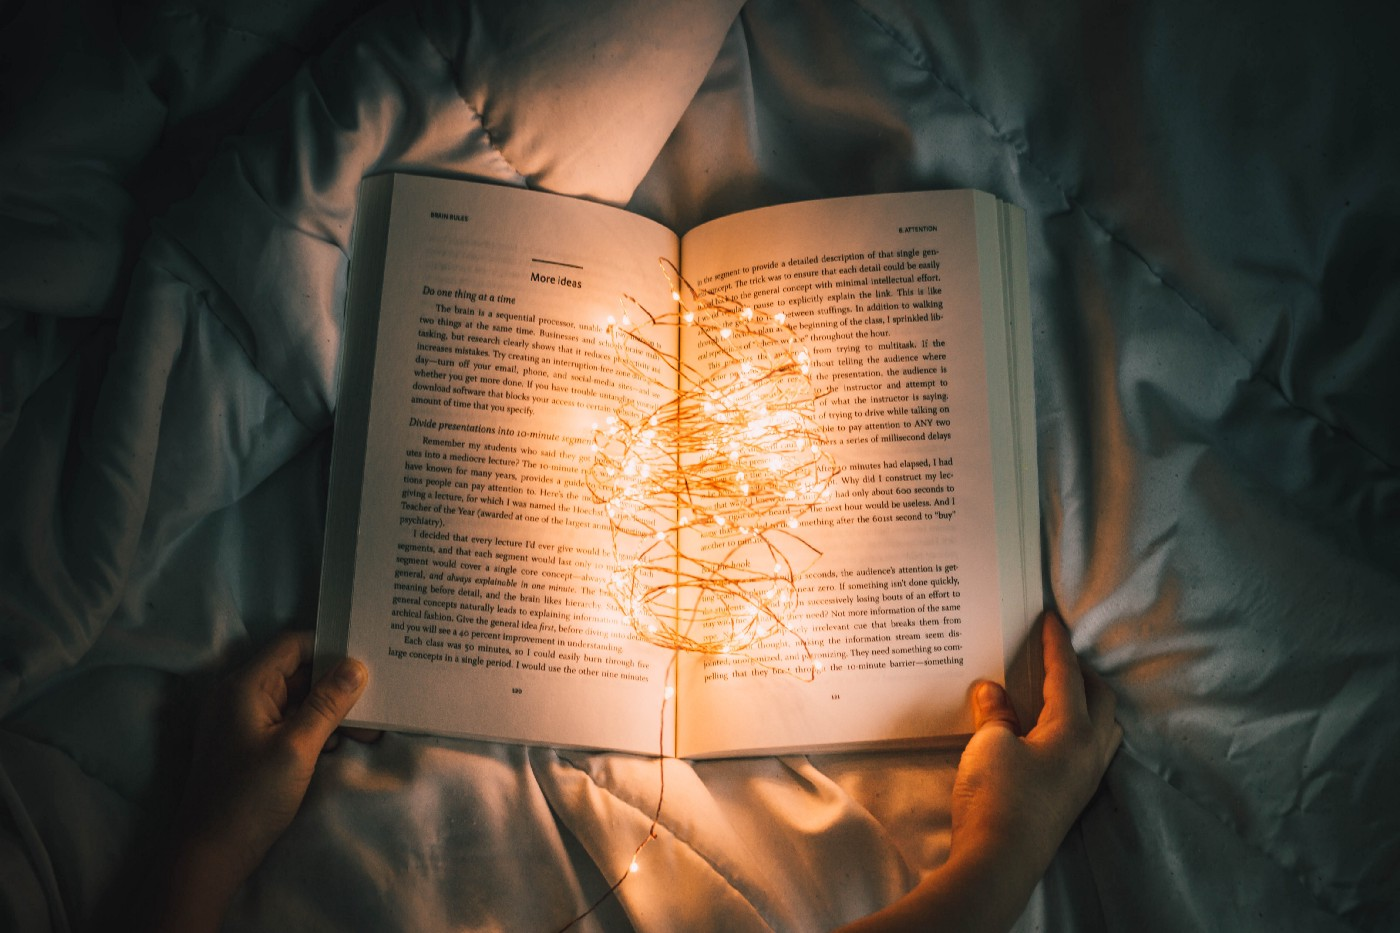 An open book on a blanket in a bed with lights inside the book, illuminating the pages